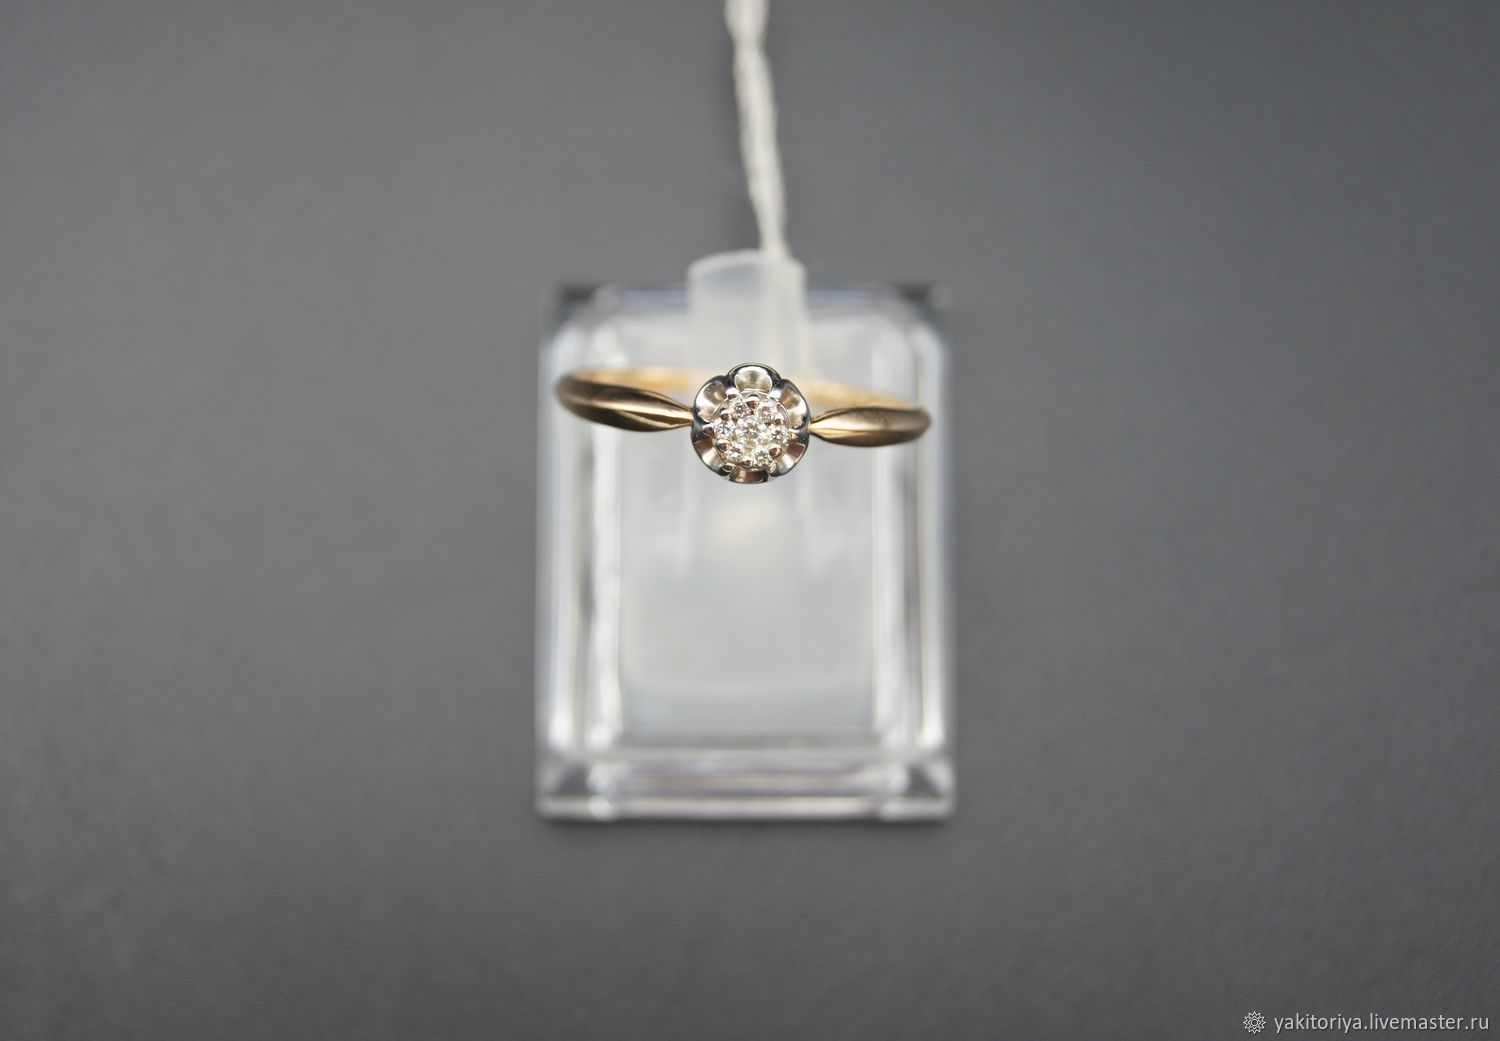 585 gold ring with natural diamonds, Rings, Moscow,  Фото №1